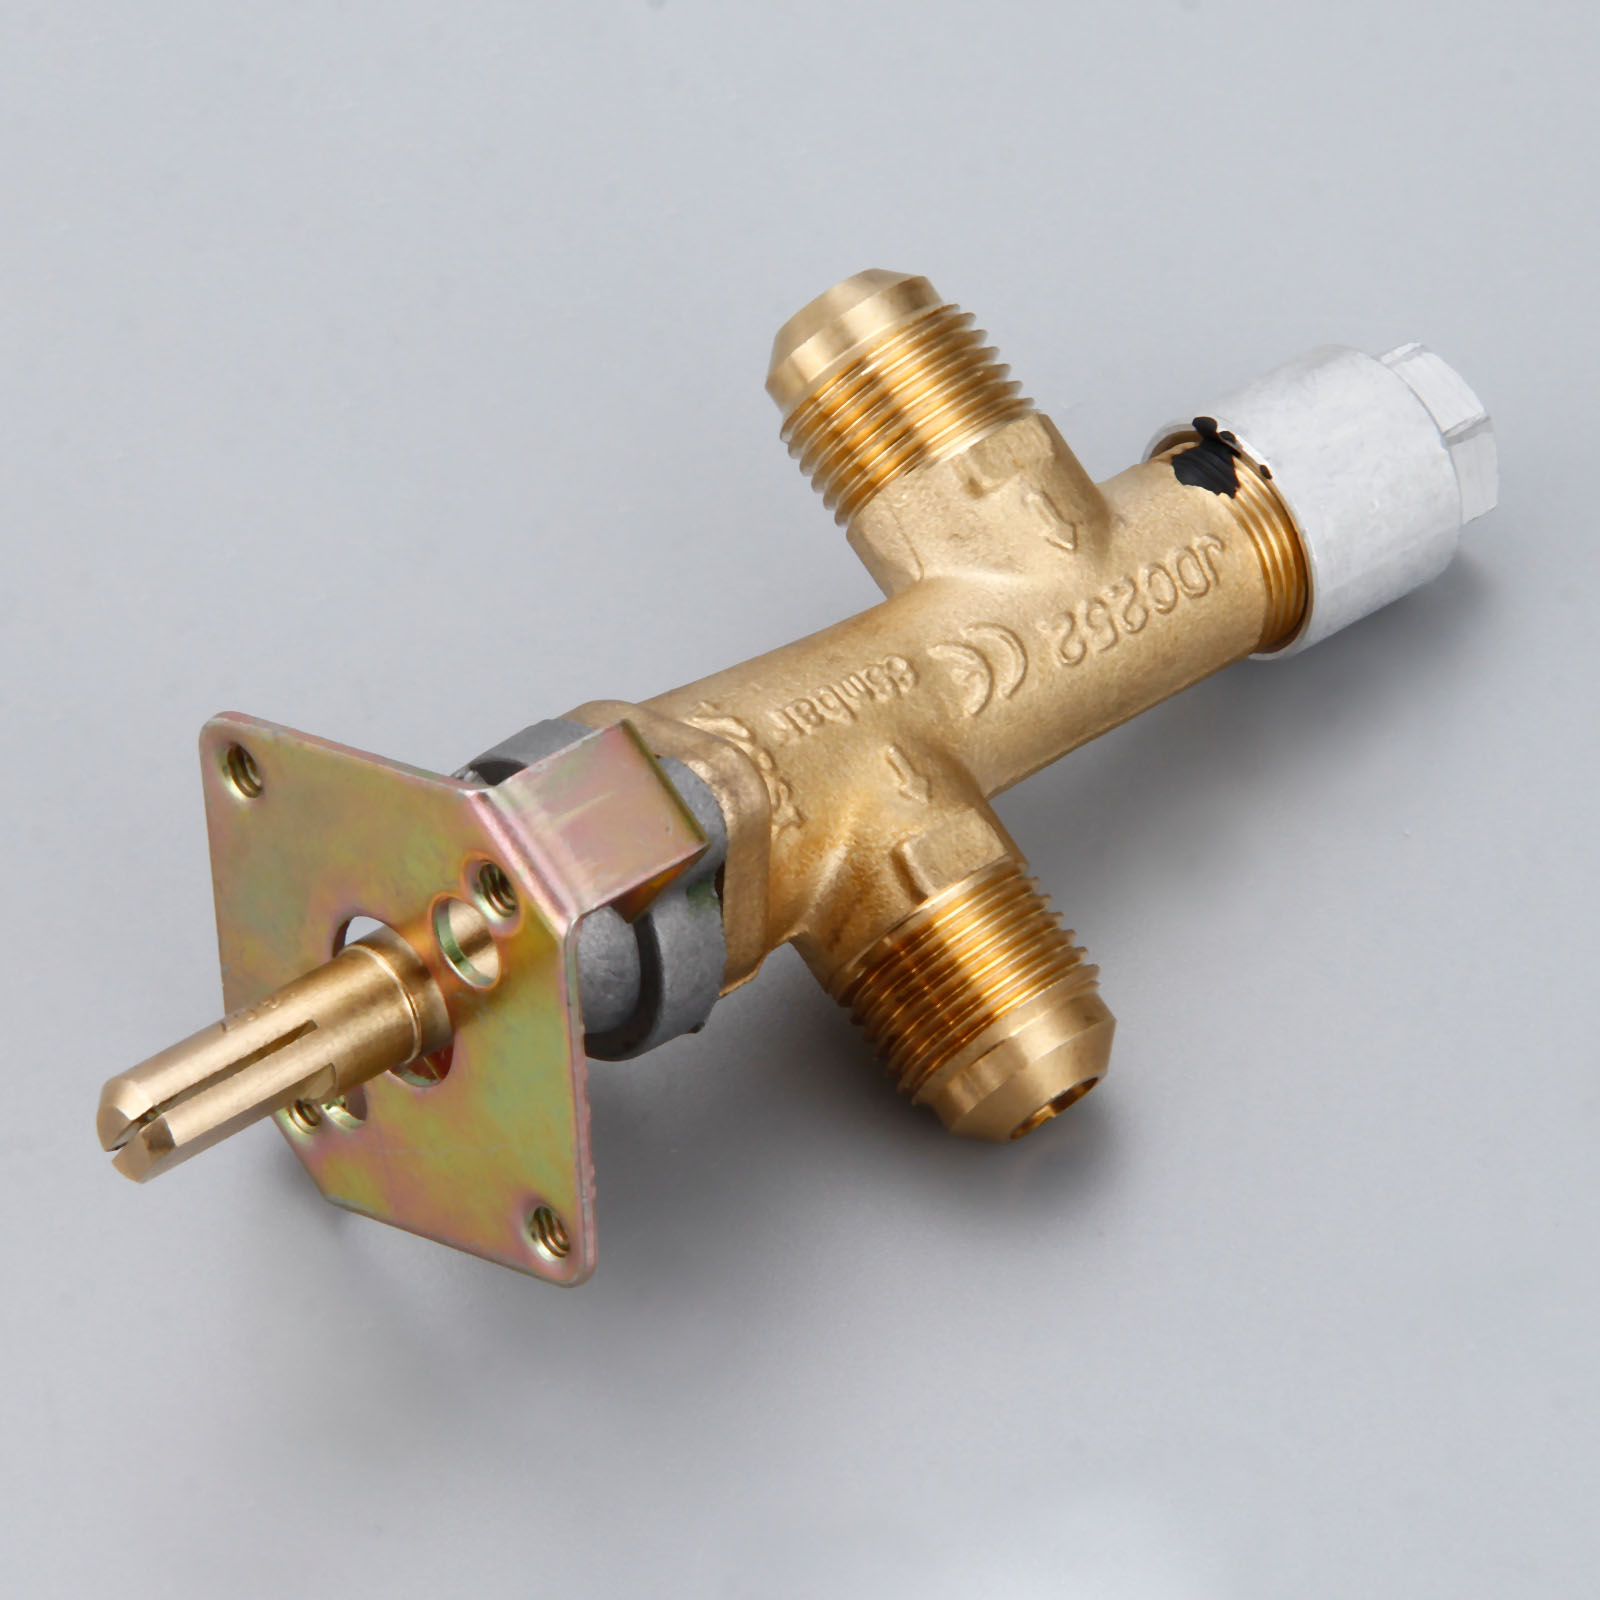 Safety Valve For Fire Pit Control With 3/8inch NPT Inlet And Outlet Corrugated Low Pressure 65Mbar For LPG Gas